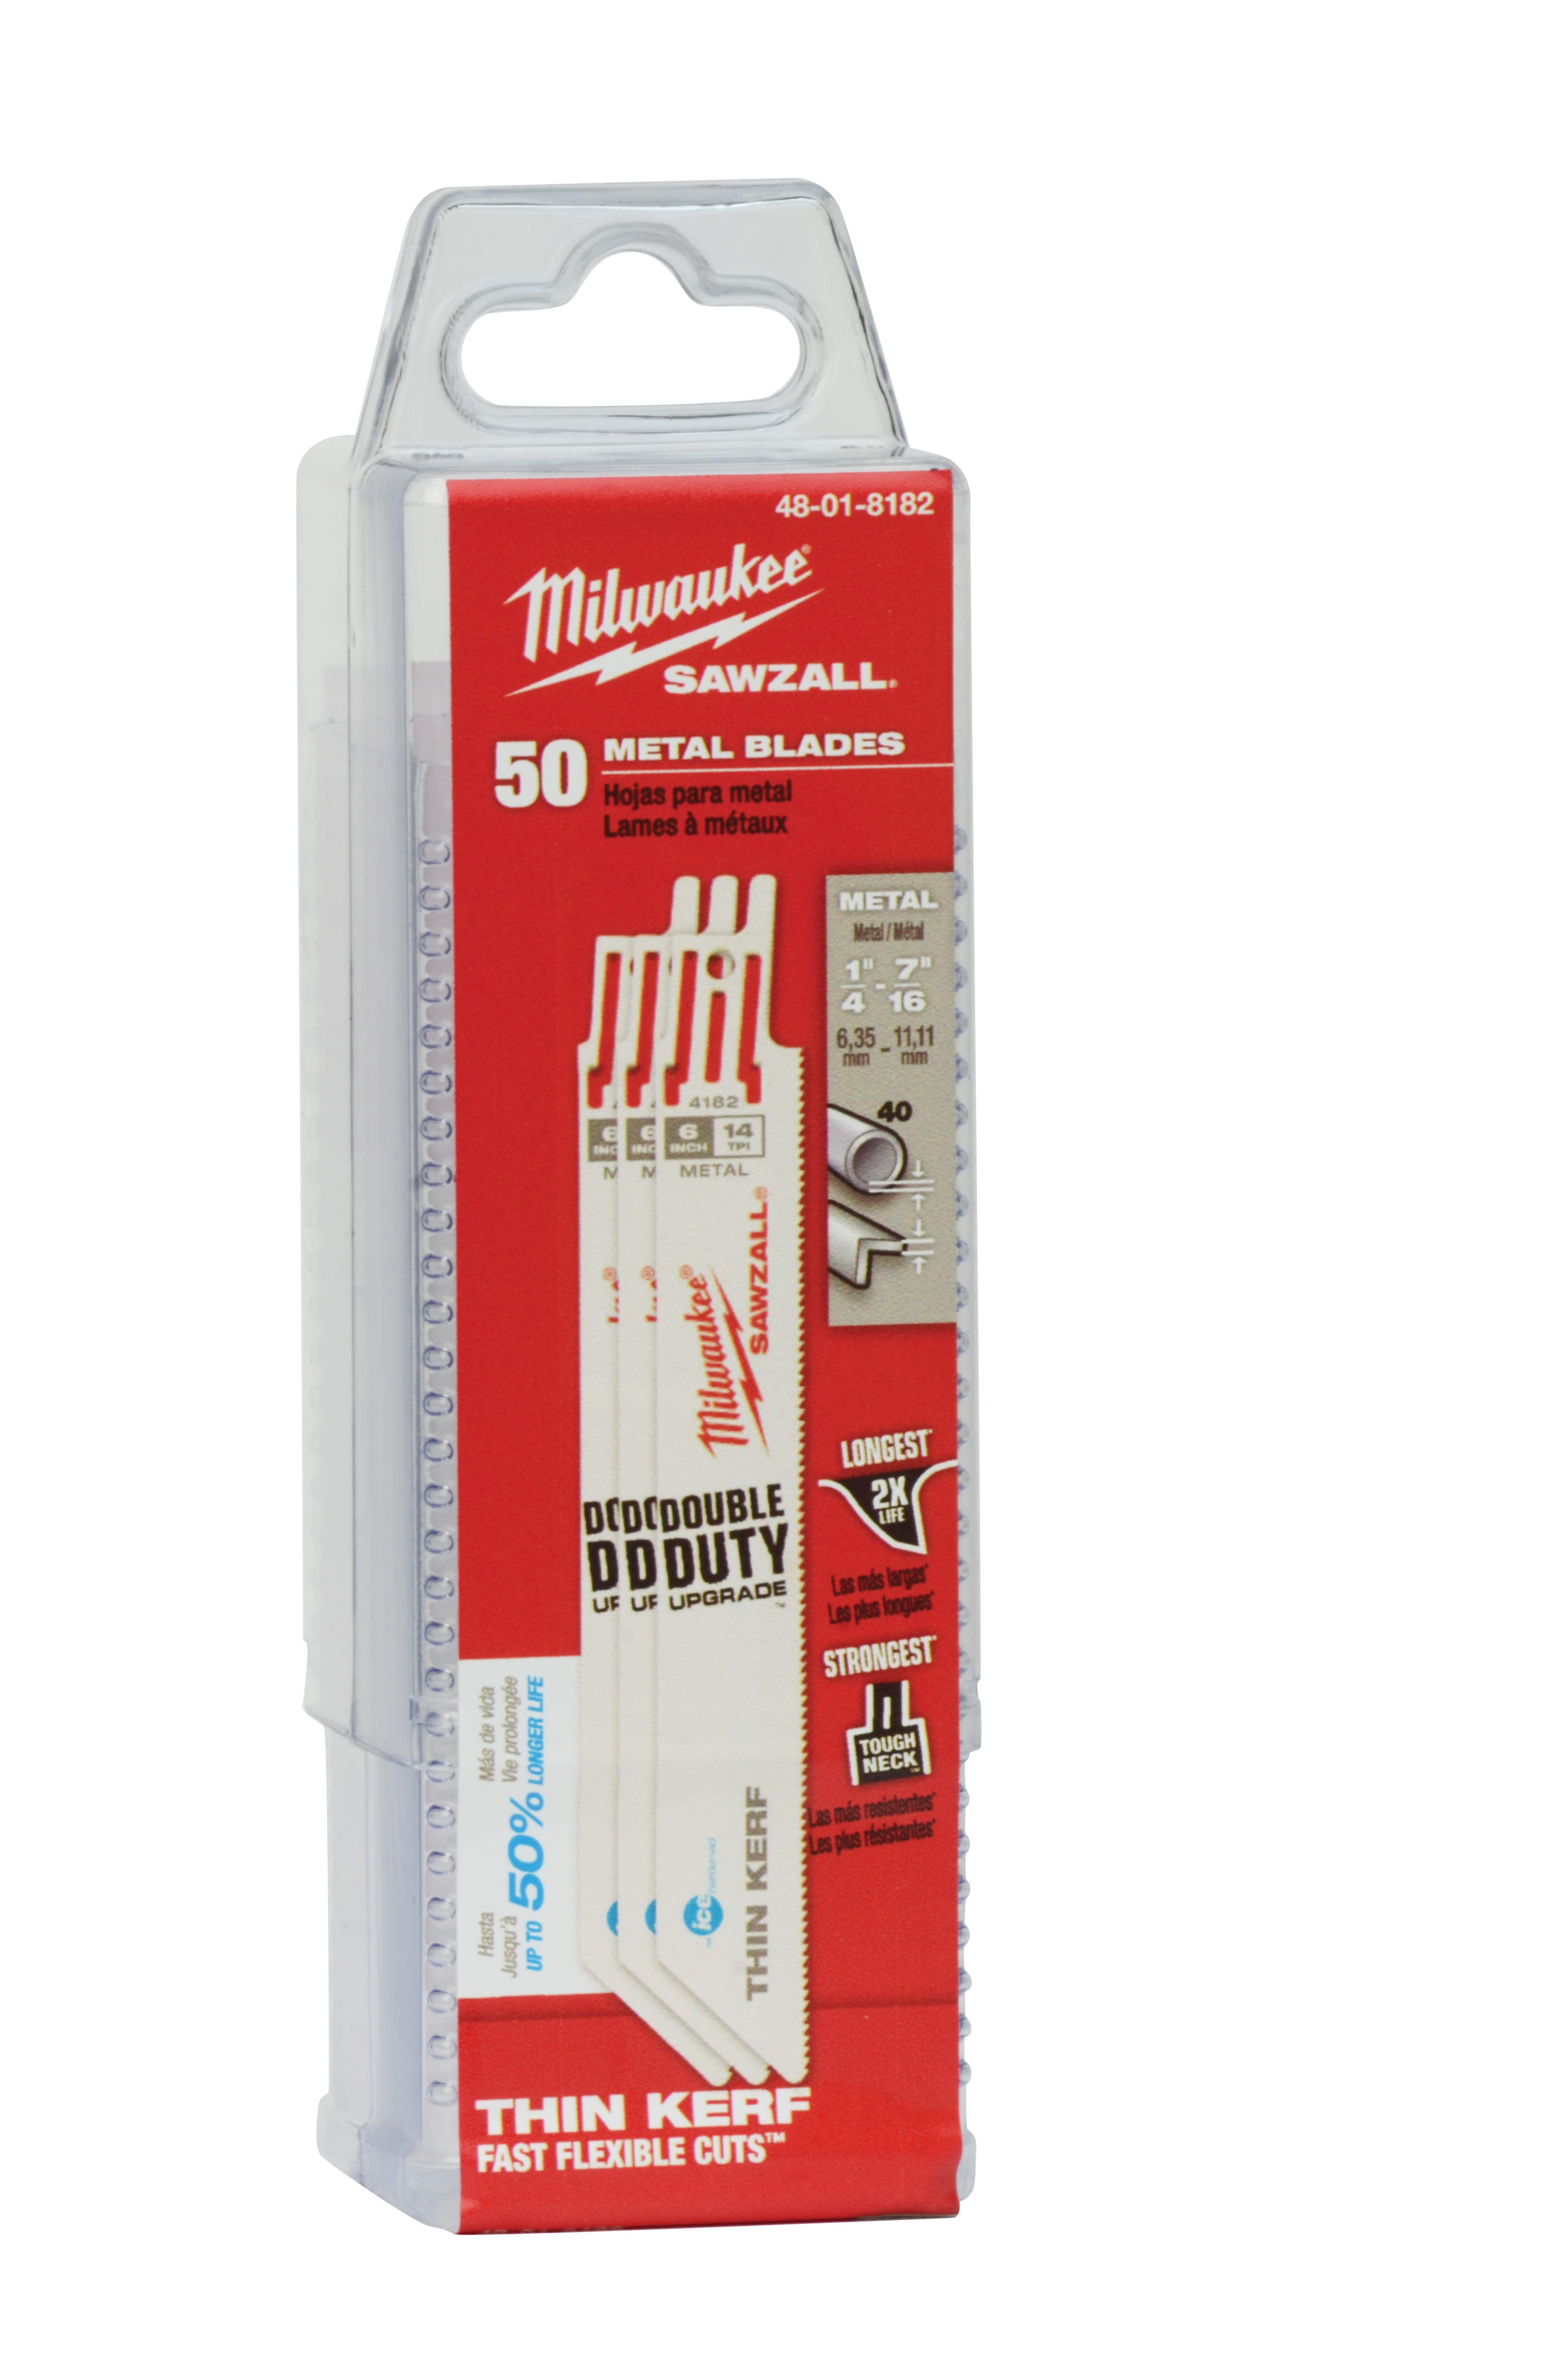 Milwaukee® Ice Hardened™ SAWZALL™ 48-01-8093 Straight Back Thin Kerf Reciprocating Saw Blade, 8 in L x 3/4 in W, 8/12, Cryogenic Bi-Metal Body, Toothed Edge/Universal Tang